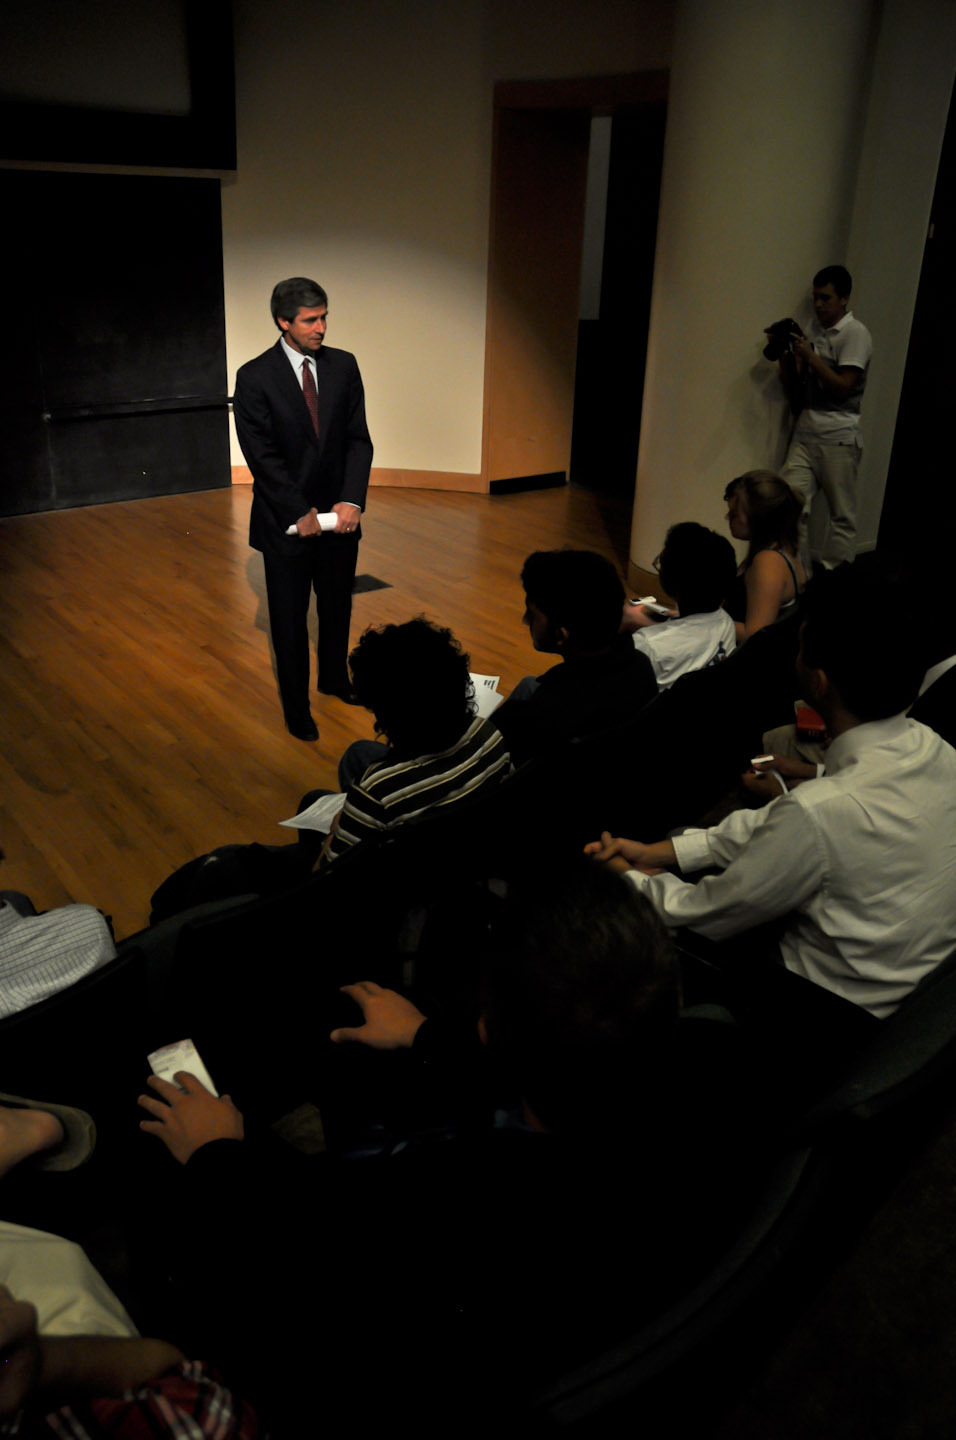 Sestak addresses students in a special meeting after his speech. (credit: Patrick Gage Kelley/Contributing Editor)